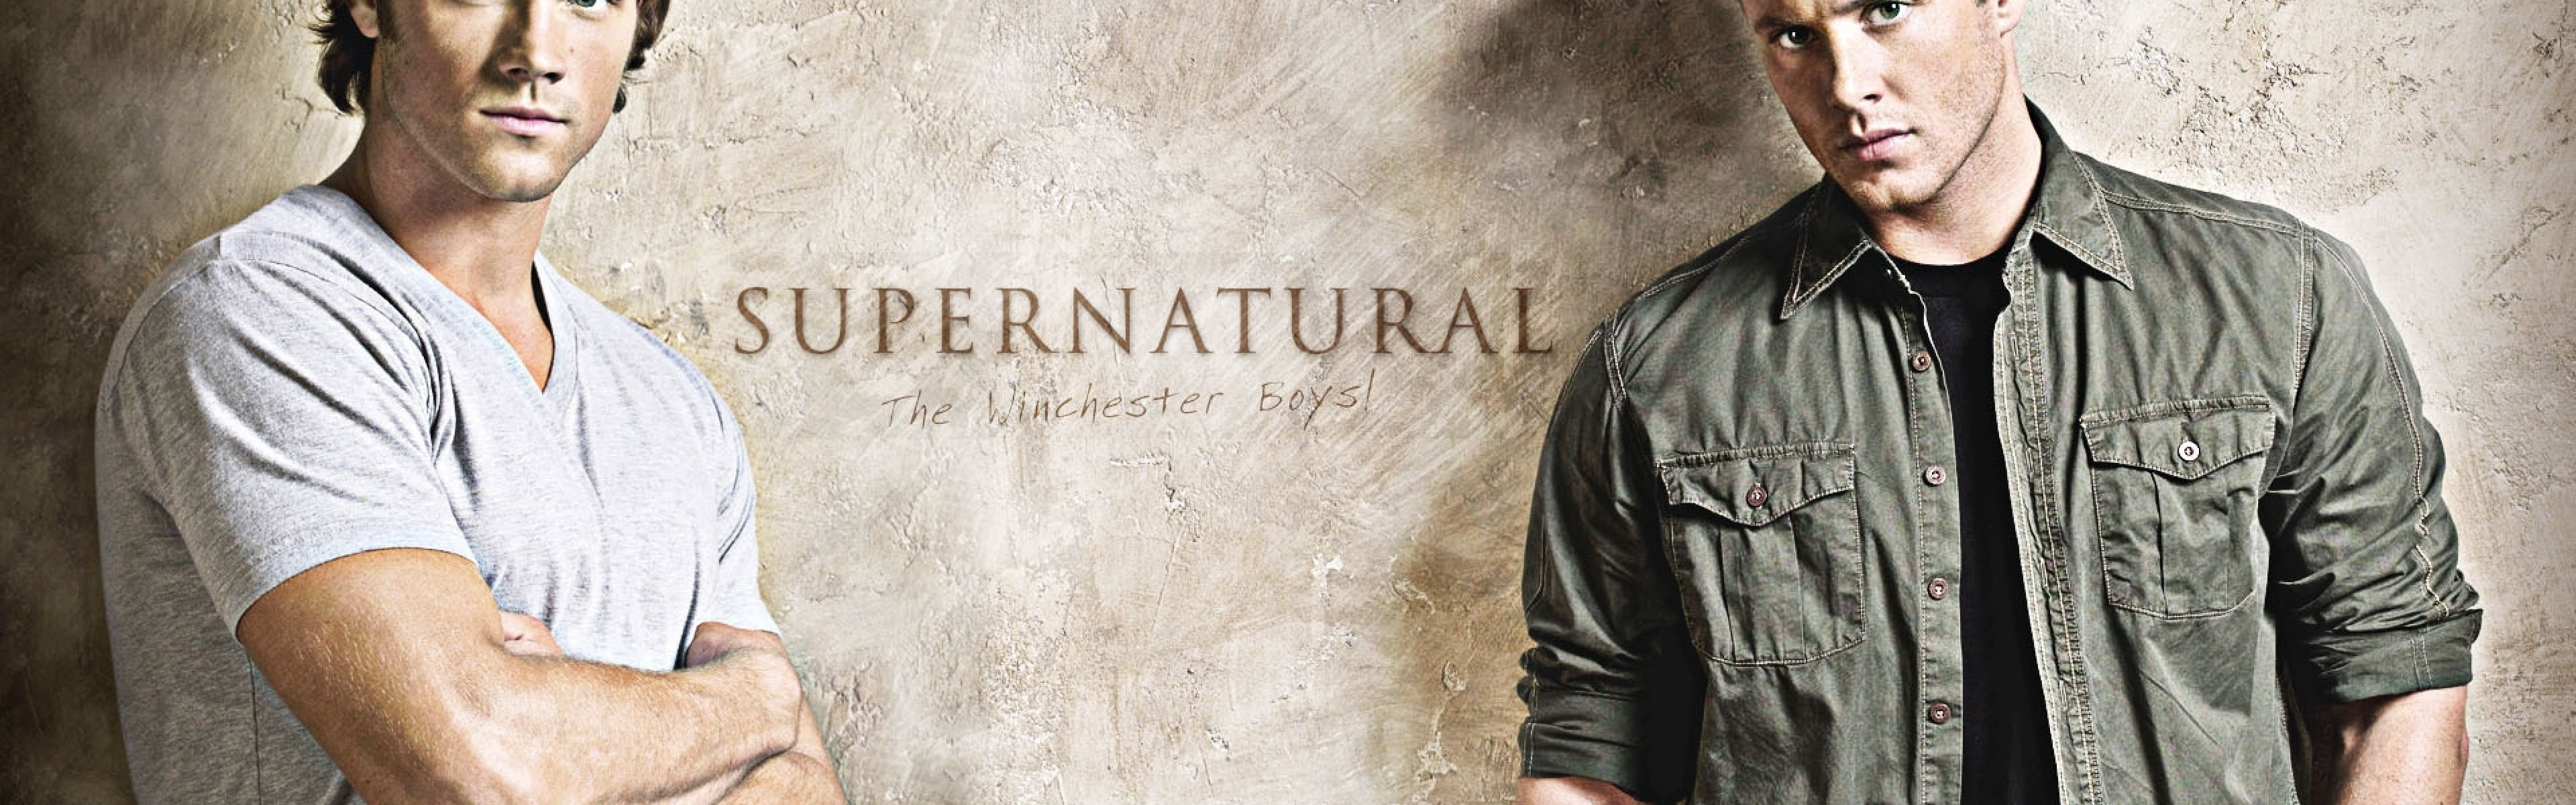 3840x1200  Wallpaper supernatural, actors, jared padalecki, jensen ackles,  sam winchester, dean